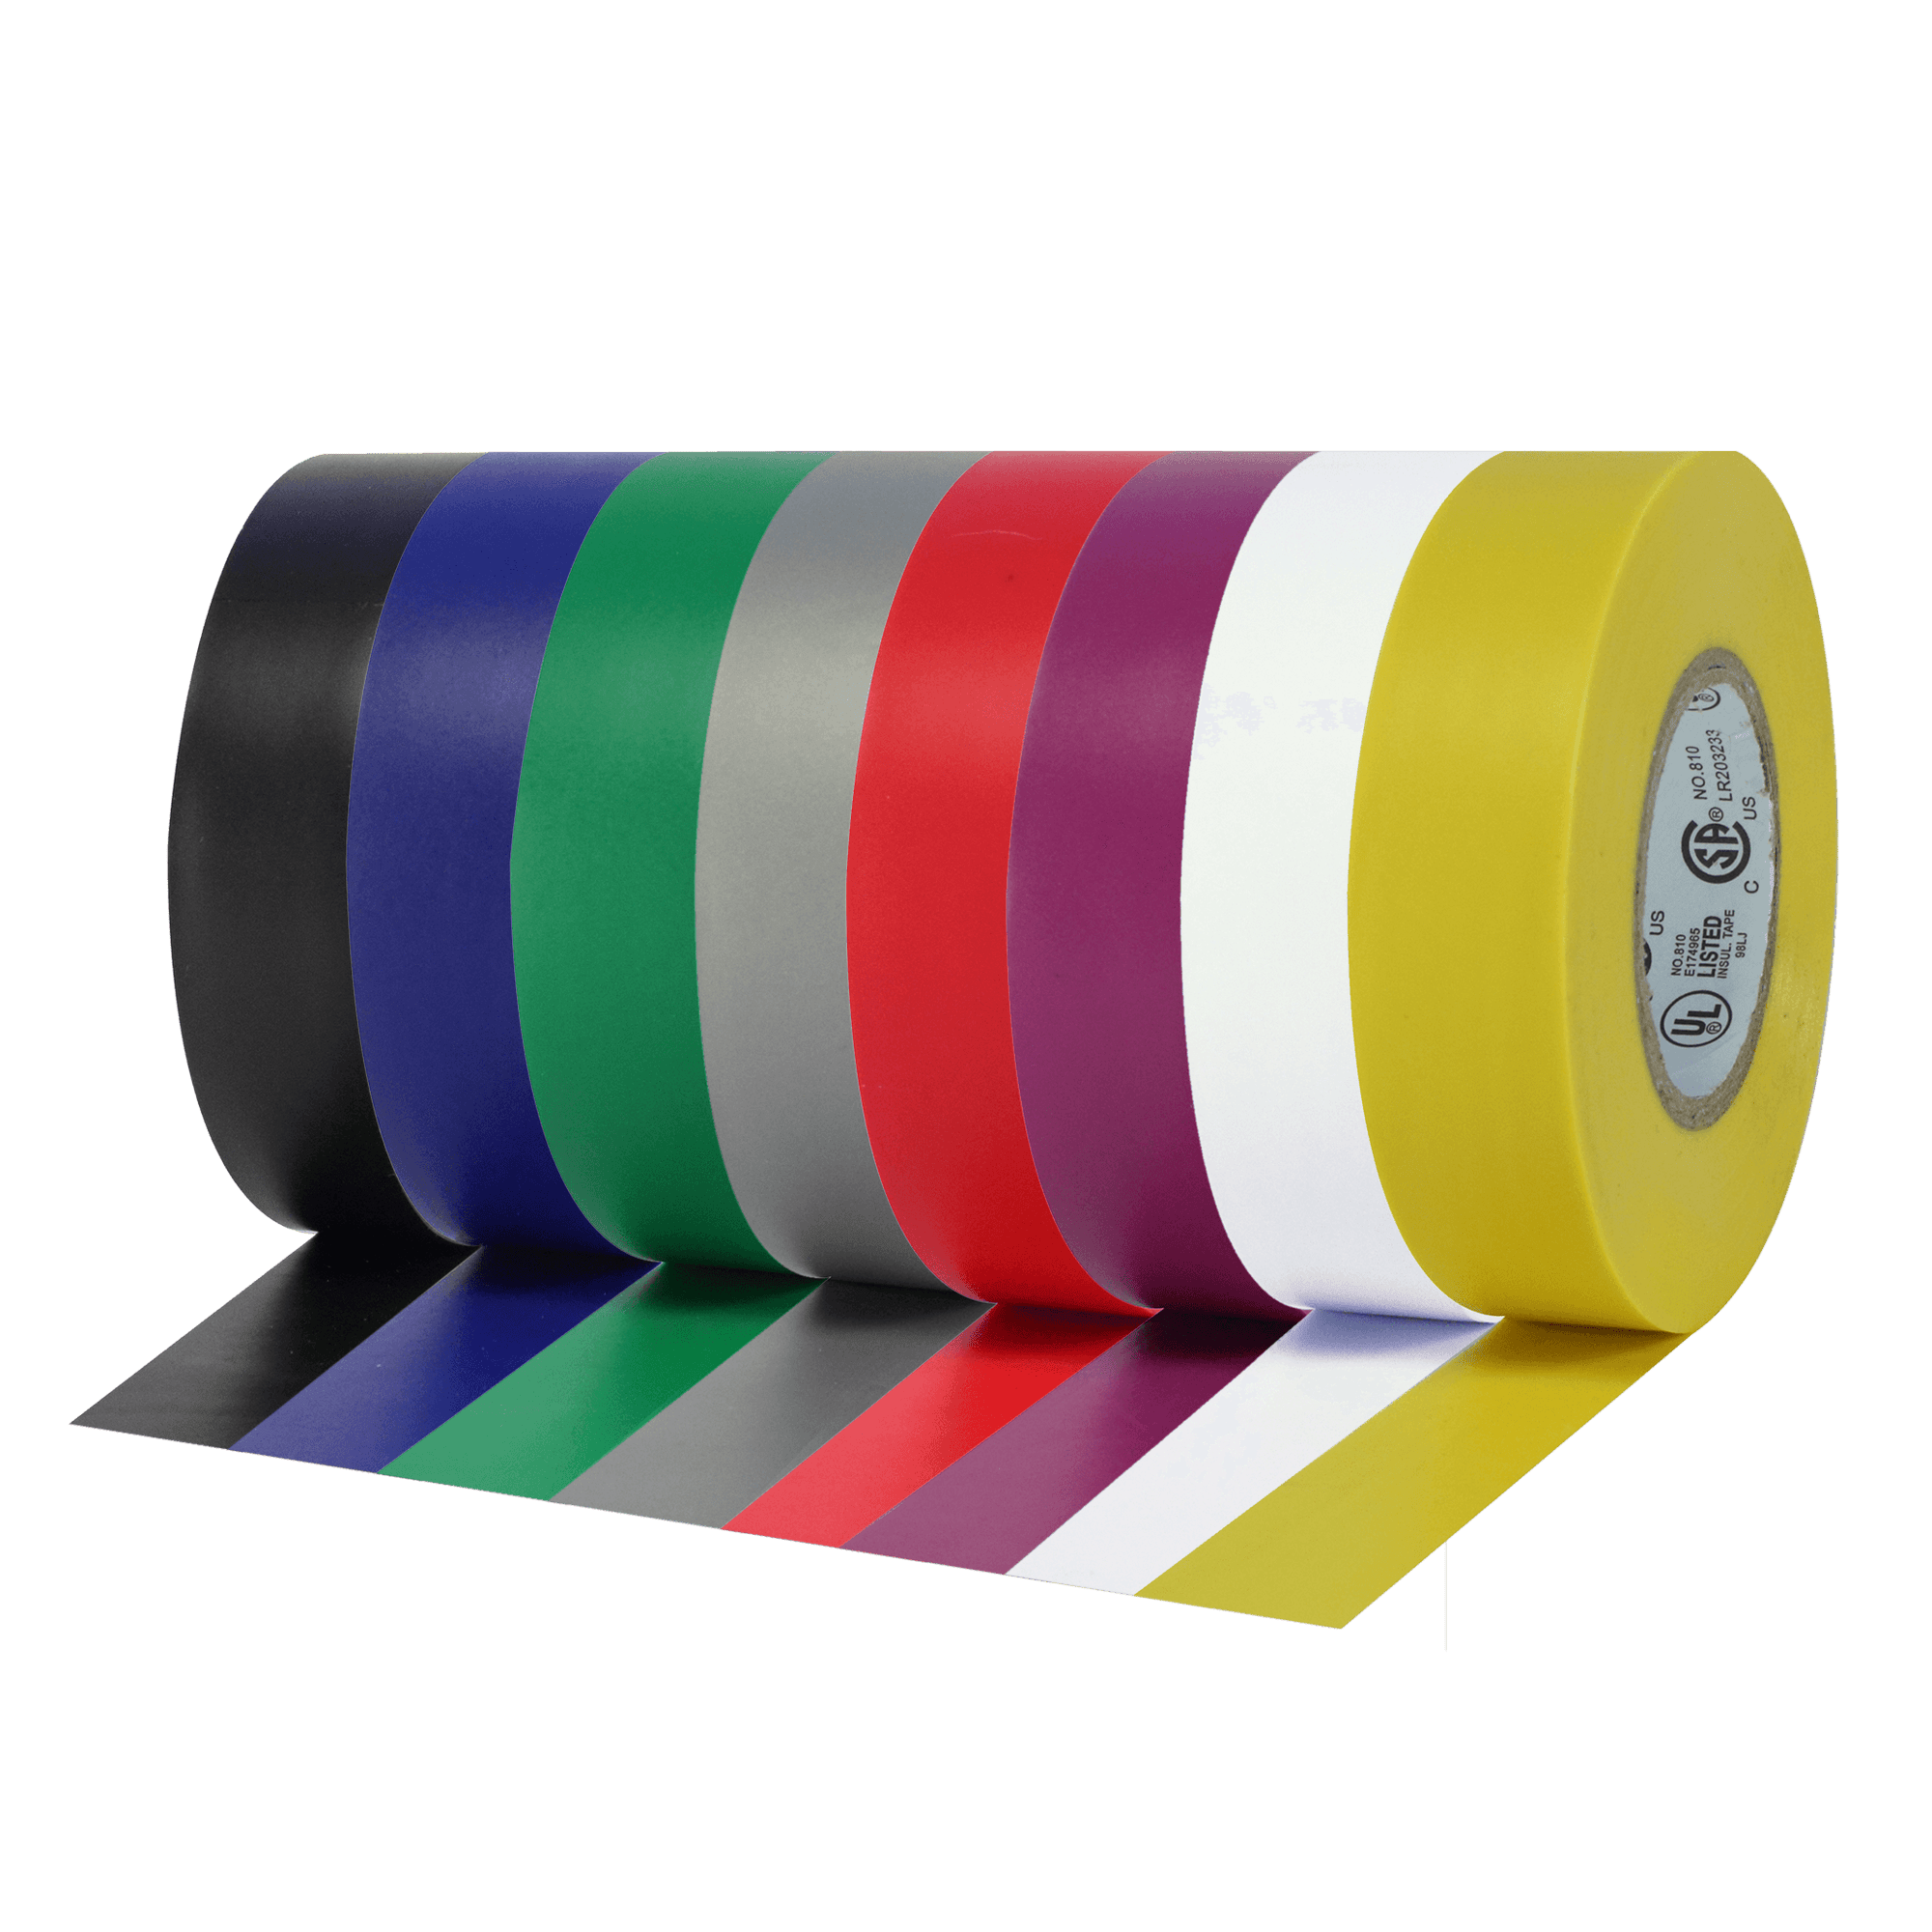 Pro Tapes Pro Plus Electrical Insulation Tape